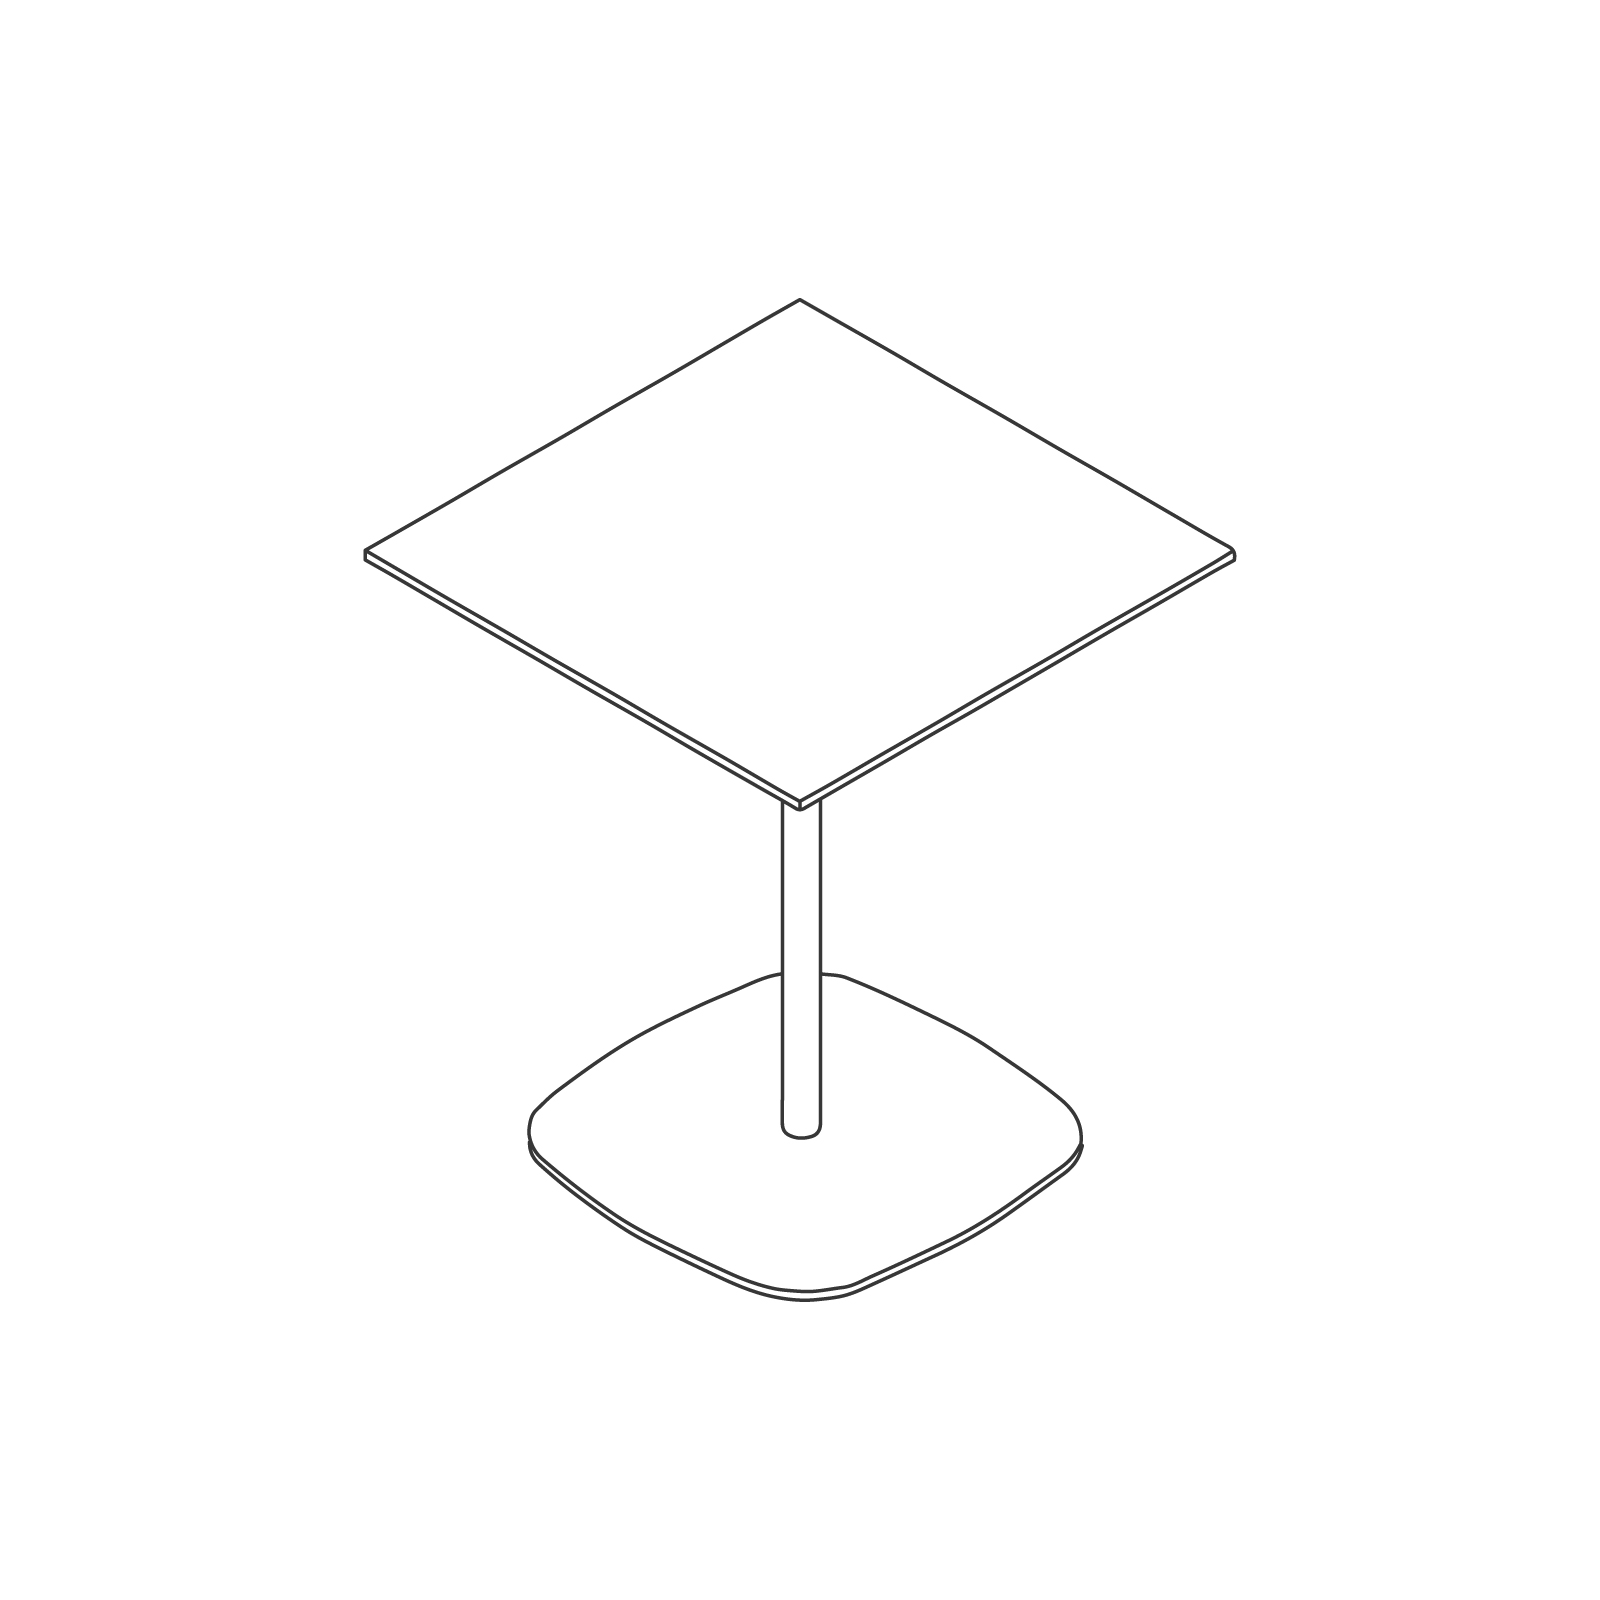 A line drawing of Ped Café Table–Square.